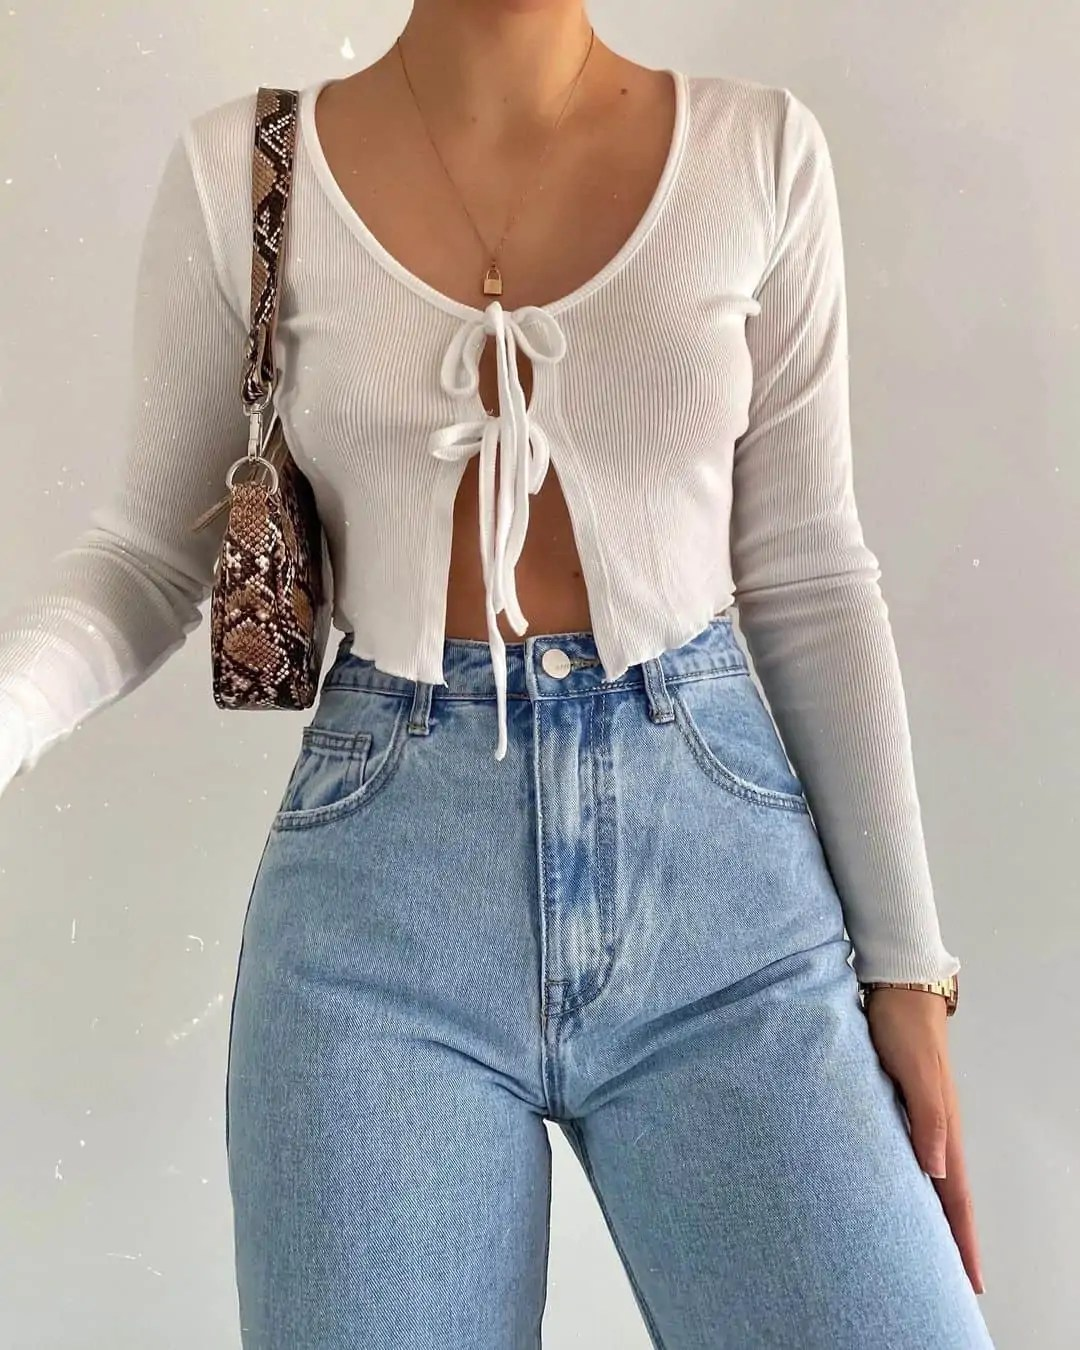 100+ Outfits to Inspire your next shopping haul 5